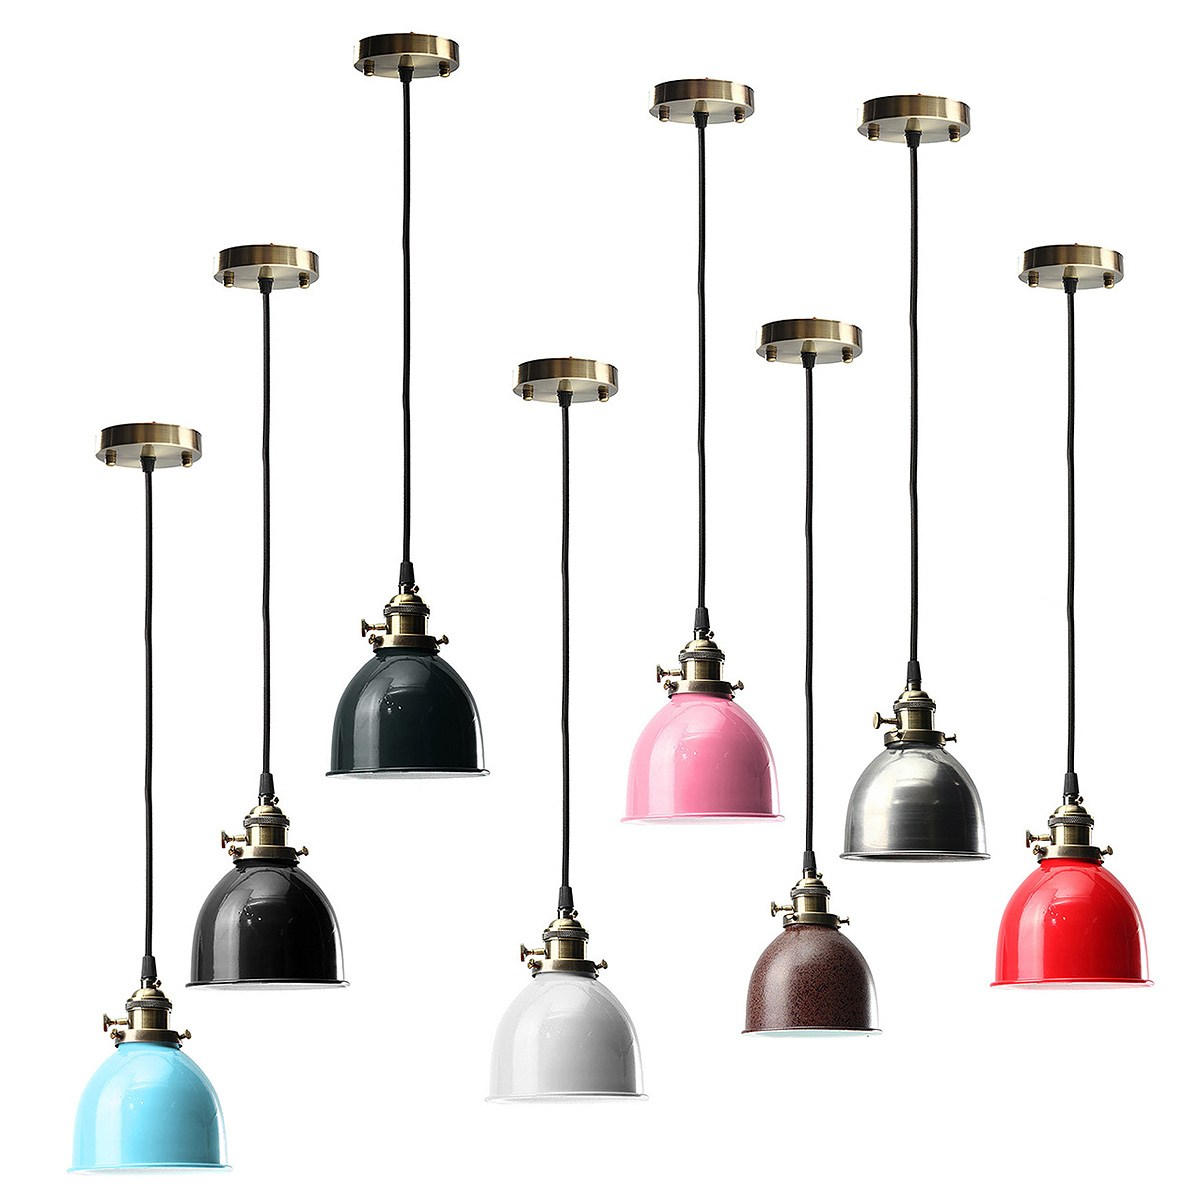 E27 Vintage Industrial Bronze Bowl Lampshade Pendant Light Bulb Holder retro Hanging Lighting Lamp Base Loft Bar Cafe Home decor loft retro hanging lamp industrial minimalist iron pendant light bar cafe restaurant e27 lamp holder vintage lights wpl028